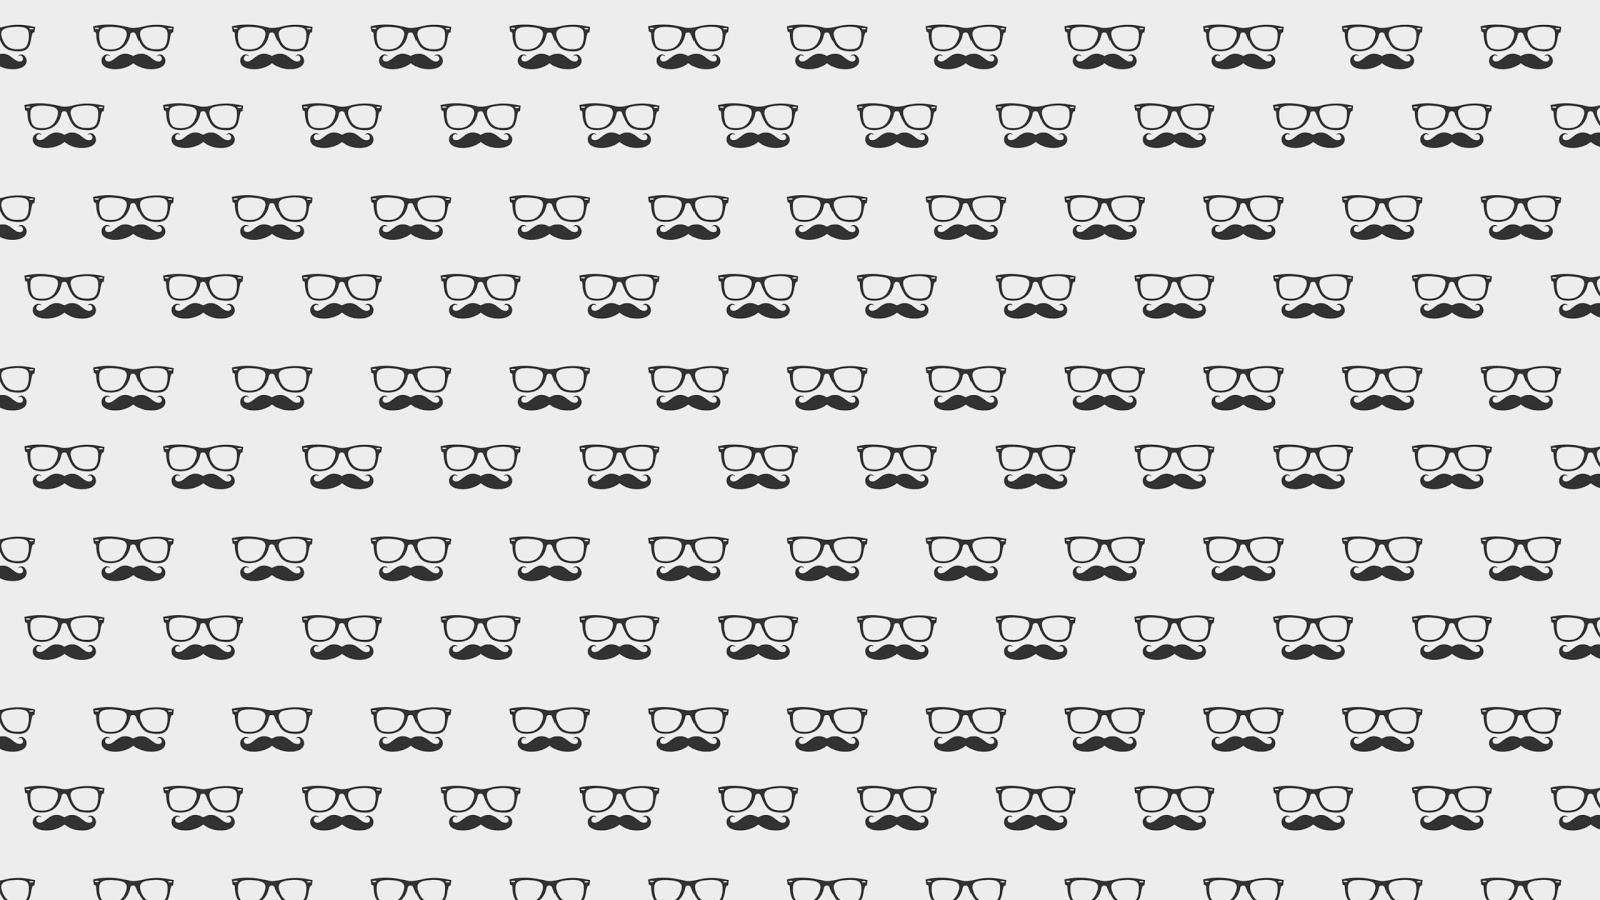 Mustache Live Wallpaper 100 Screenshot 1 2